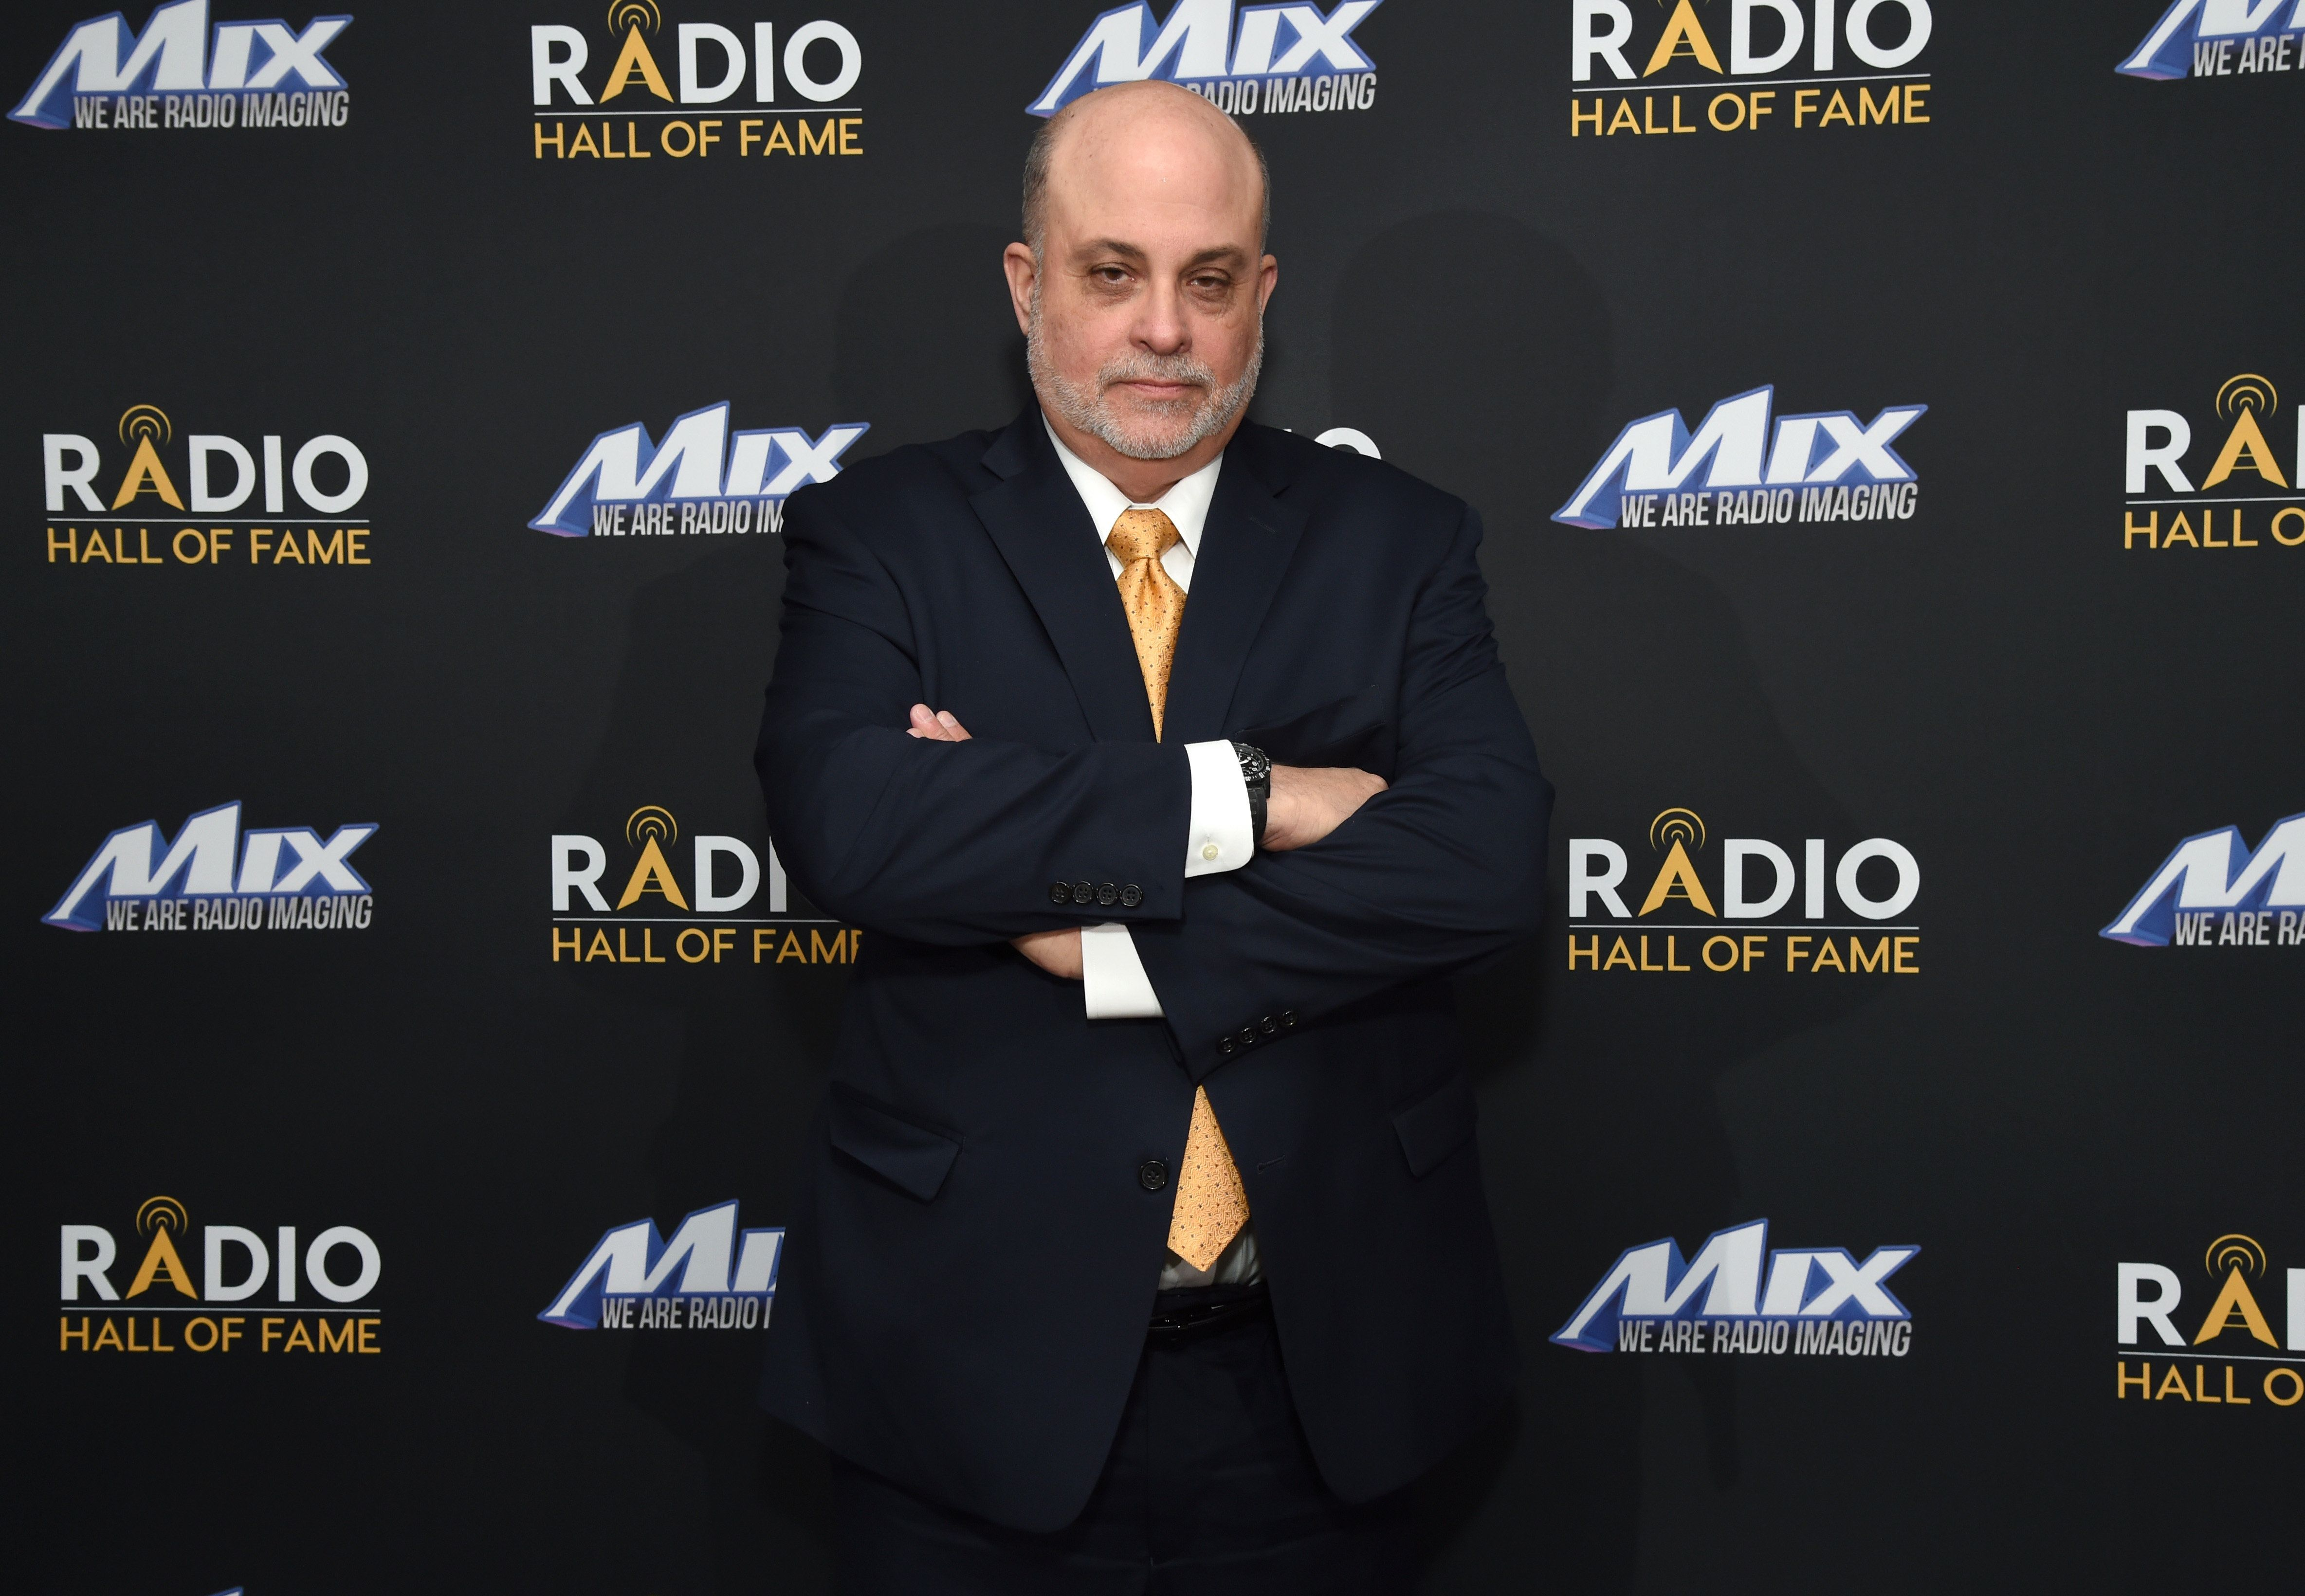 NEW YORK, NY - NOVEMBER 15:  Inductee Mark Levin attends Radio Hall Of Fame 2018 Induction Ceremony at Guastavino's on November 15, 2018 in New York City.  (Photo by Michael Kovac/Getty Images for Radio Hall of Fame )